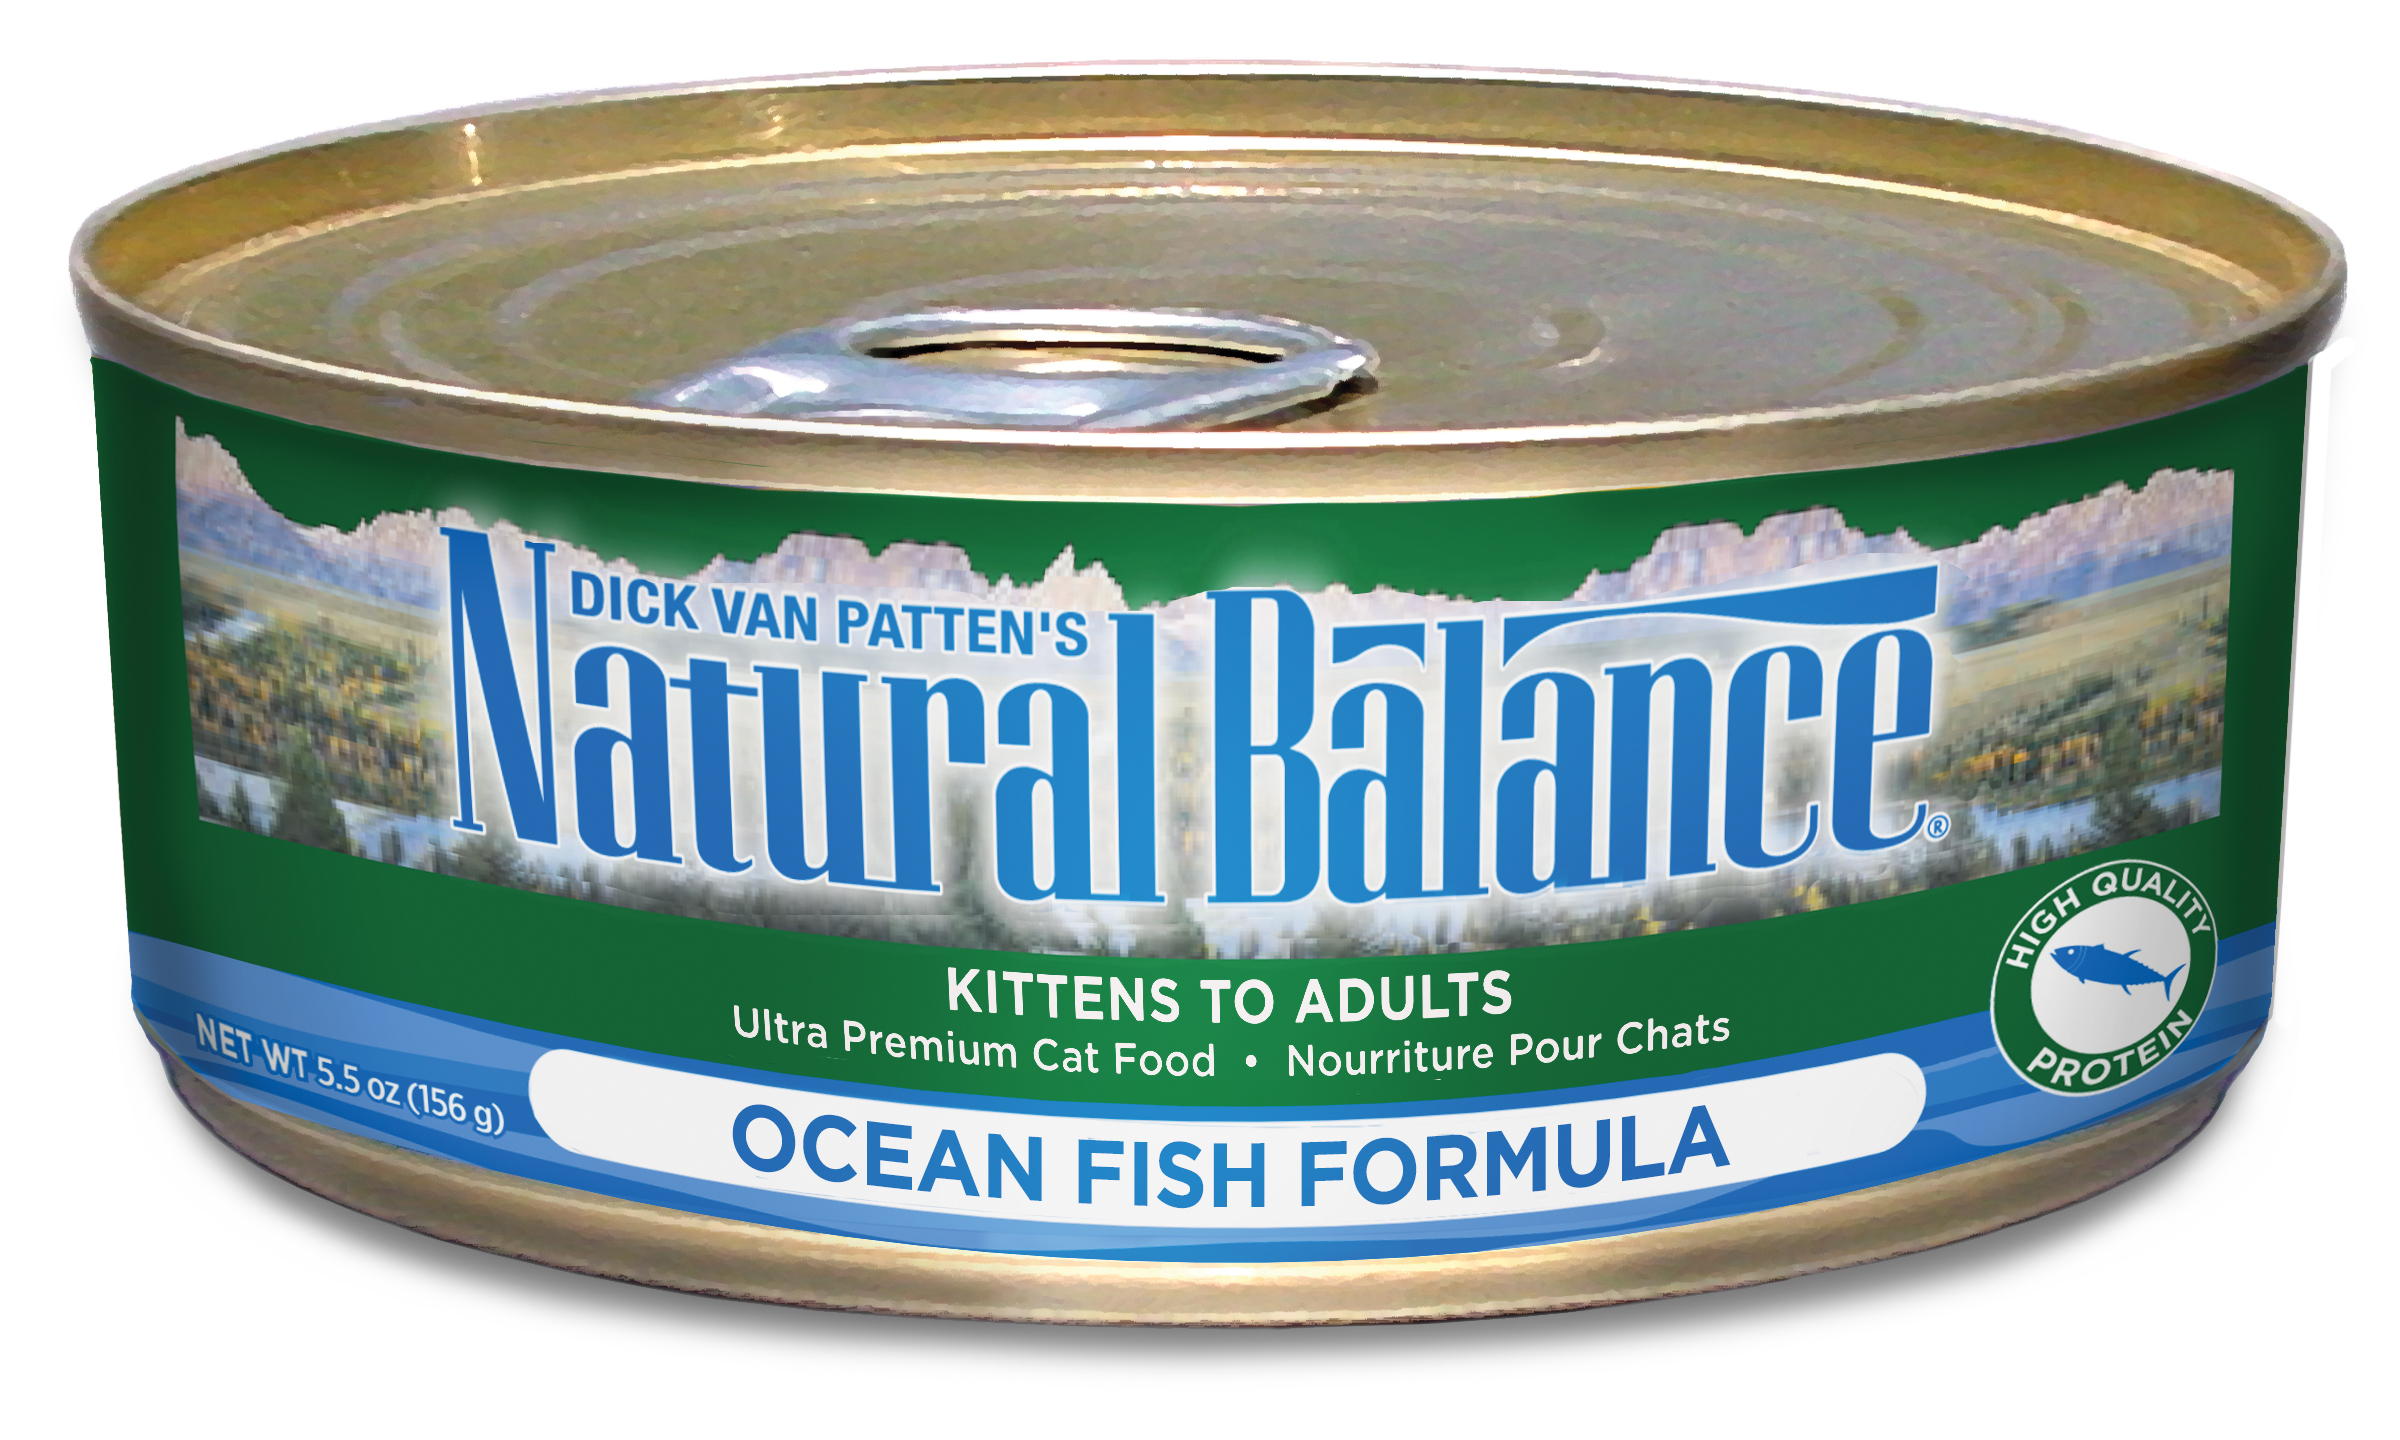 Natural Balance Ocean Fish, Canned Cat Food, 5.5-oz can